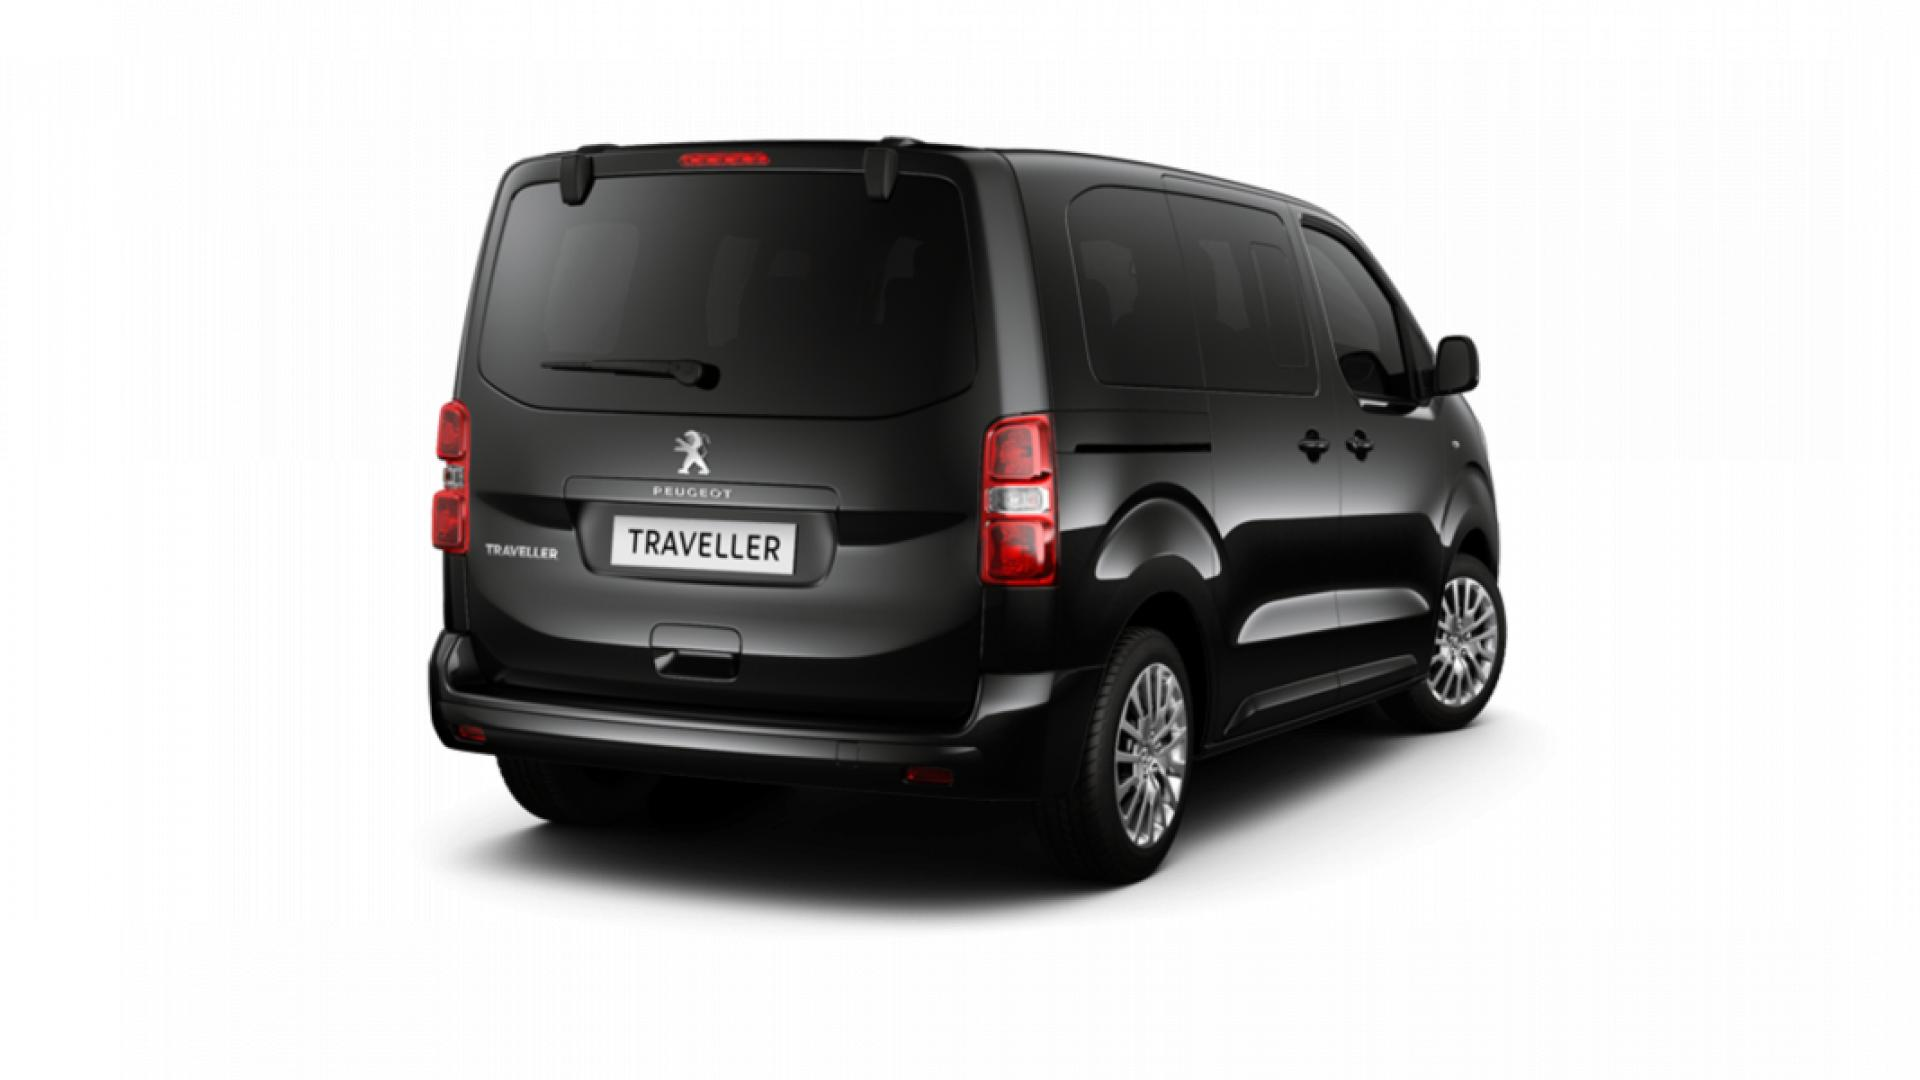 new peugeot traveller sw 1 6 bluehdi 115 active compact 8 seat 5dr robins and day. Black Bedroom Furniture Sets. Home Design Ideas